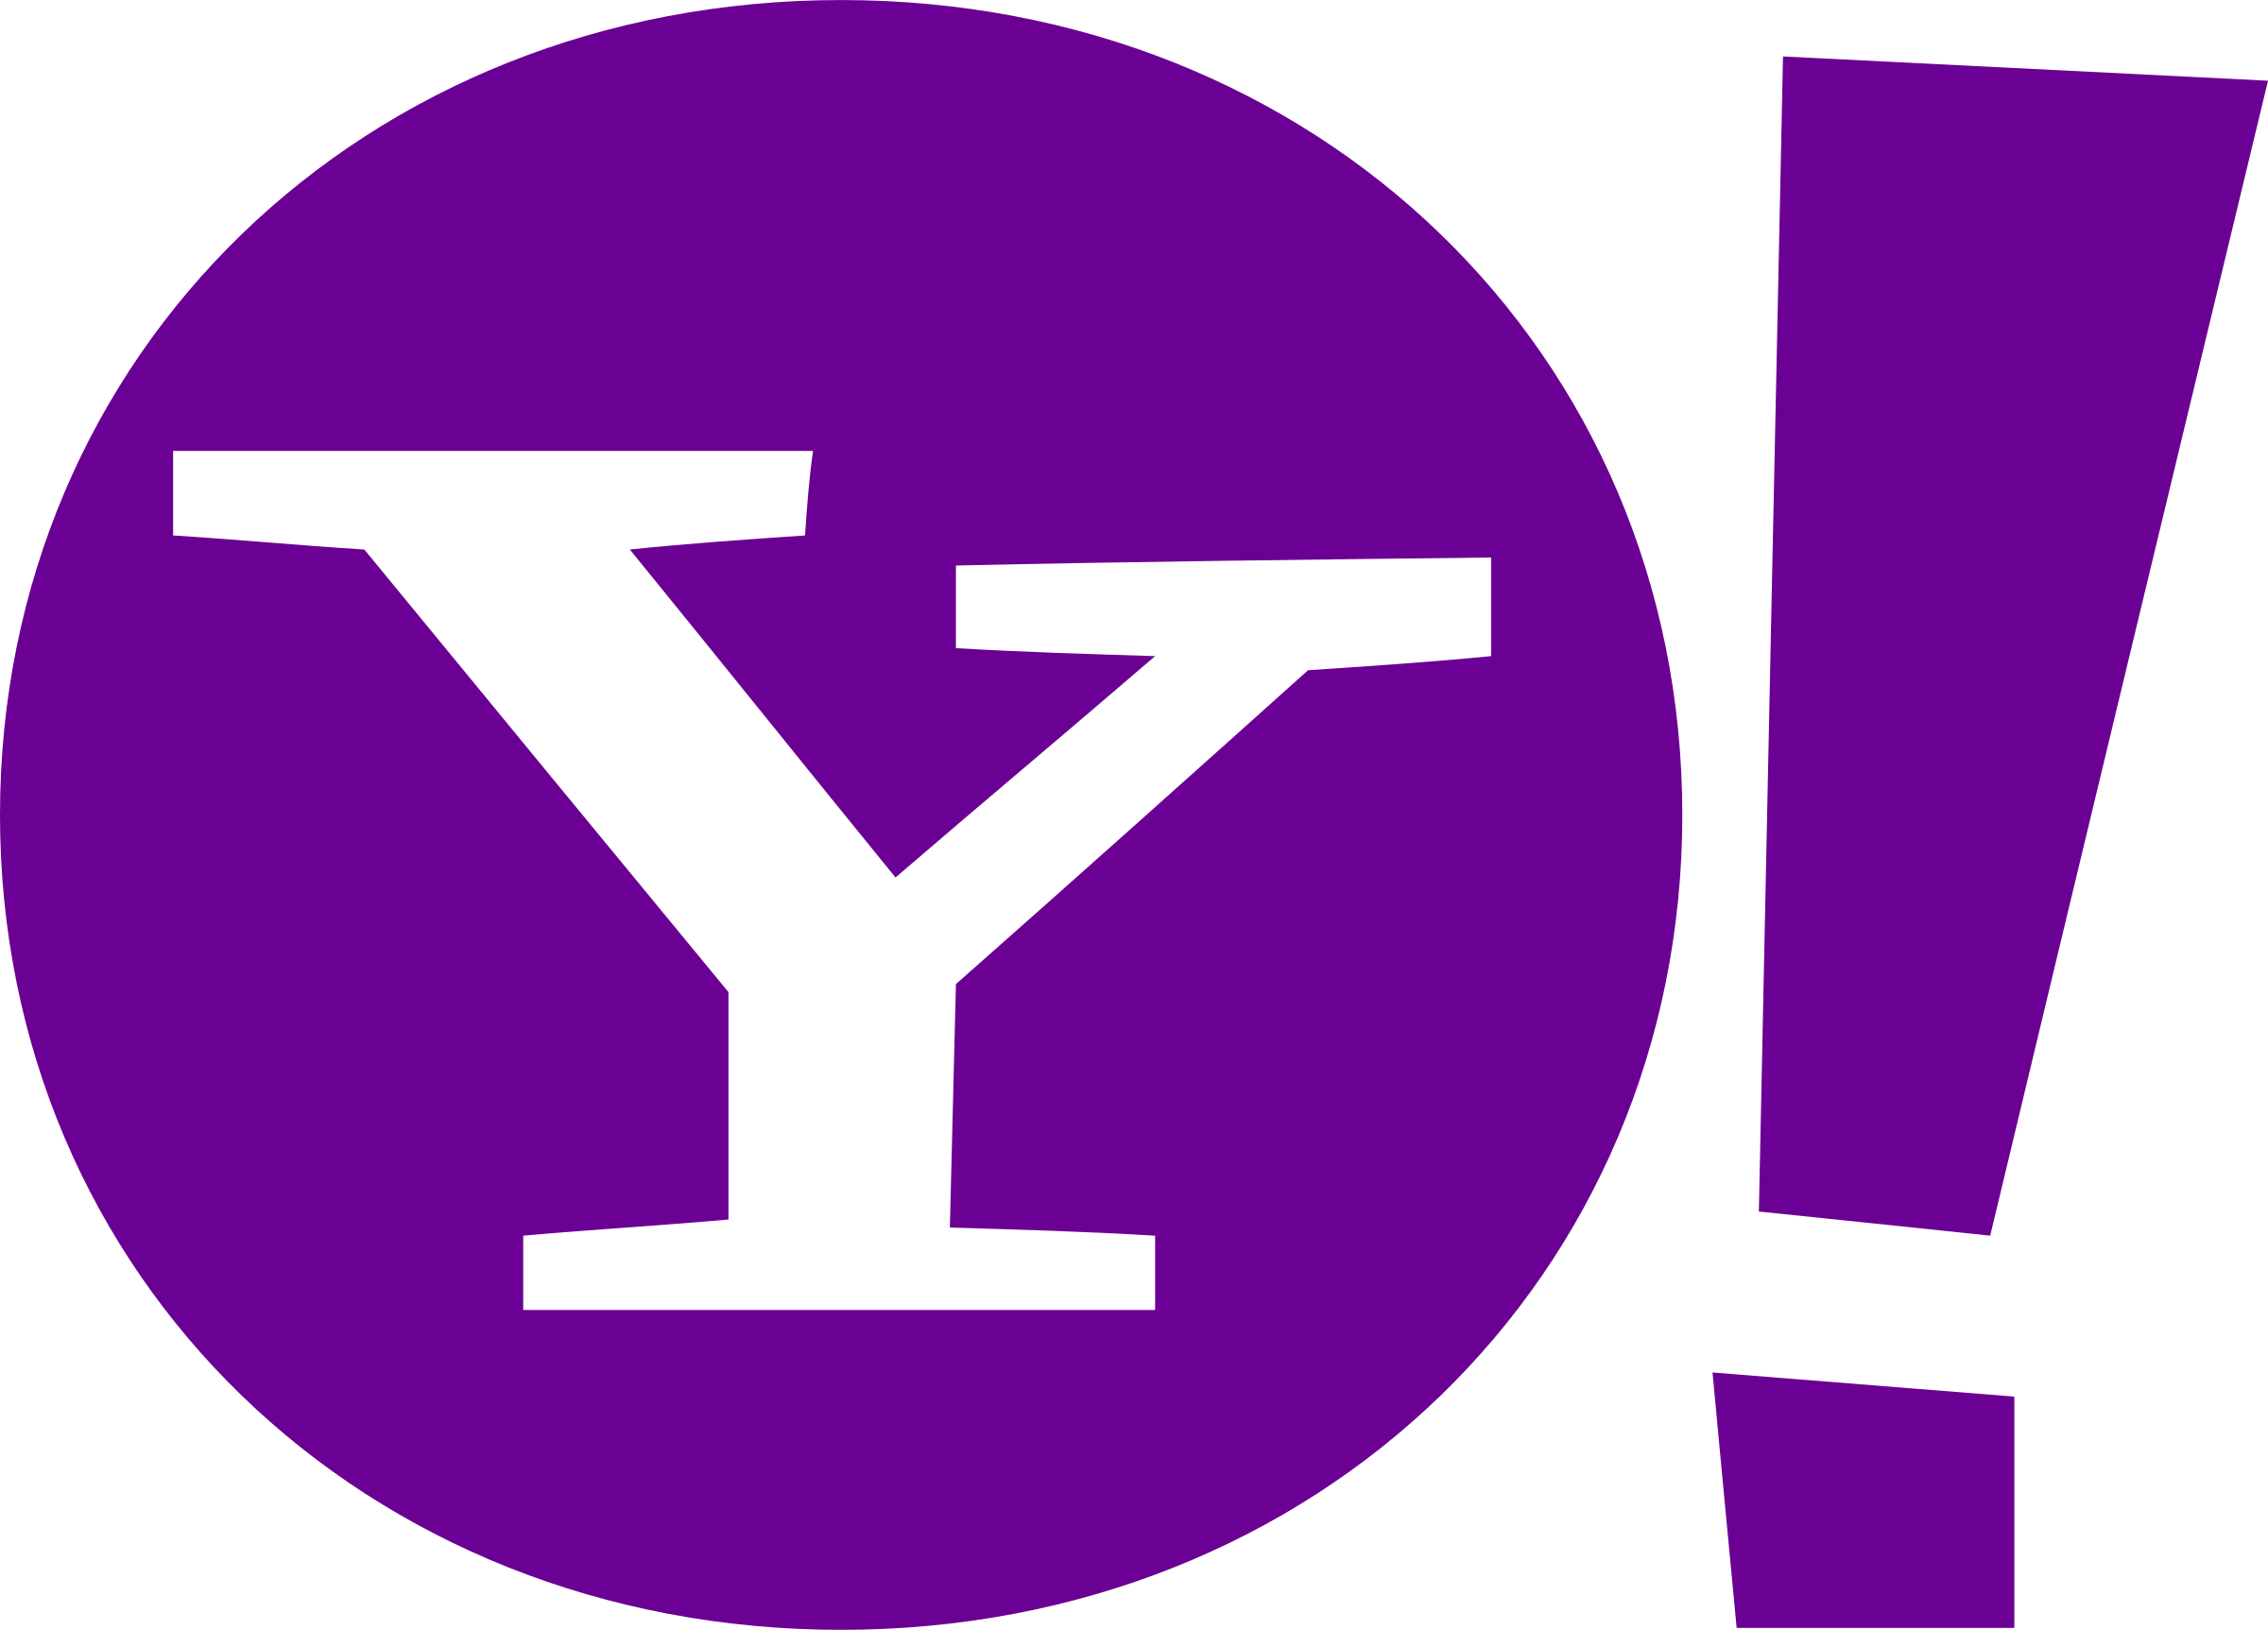 Yahoo logo png. Icon transparent svg vector